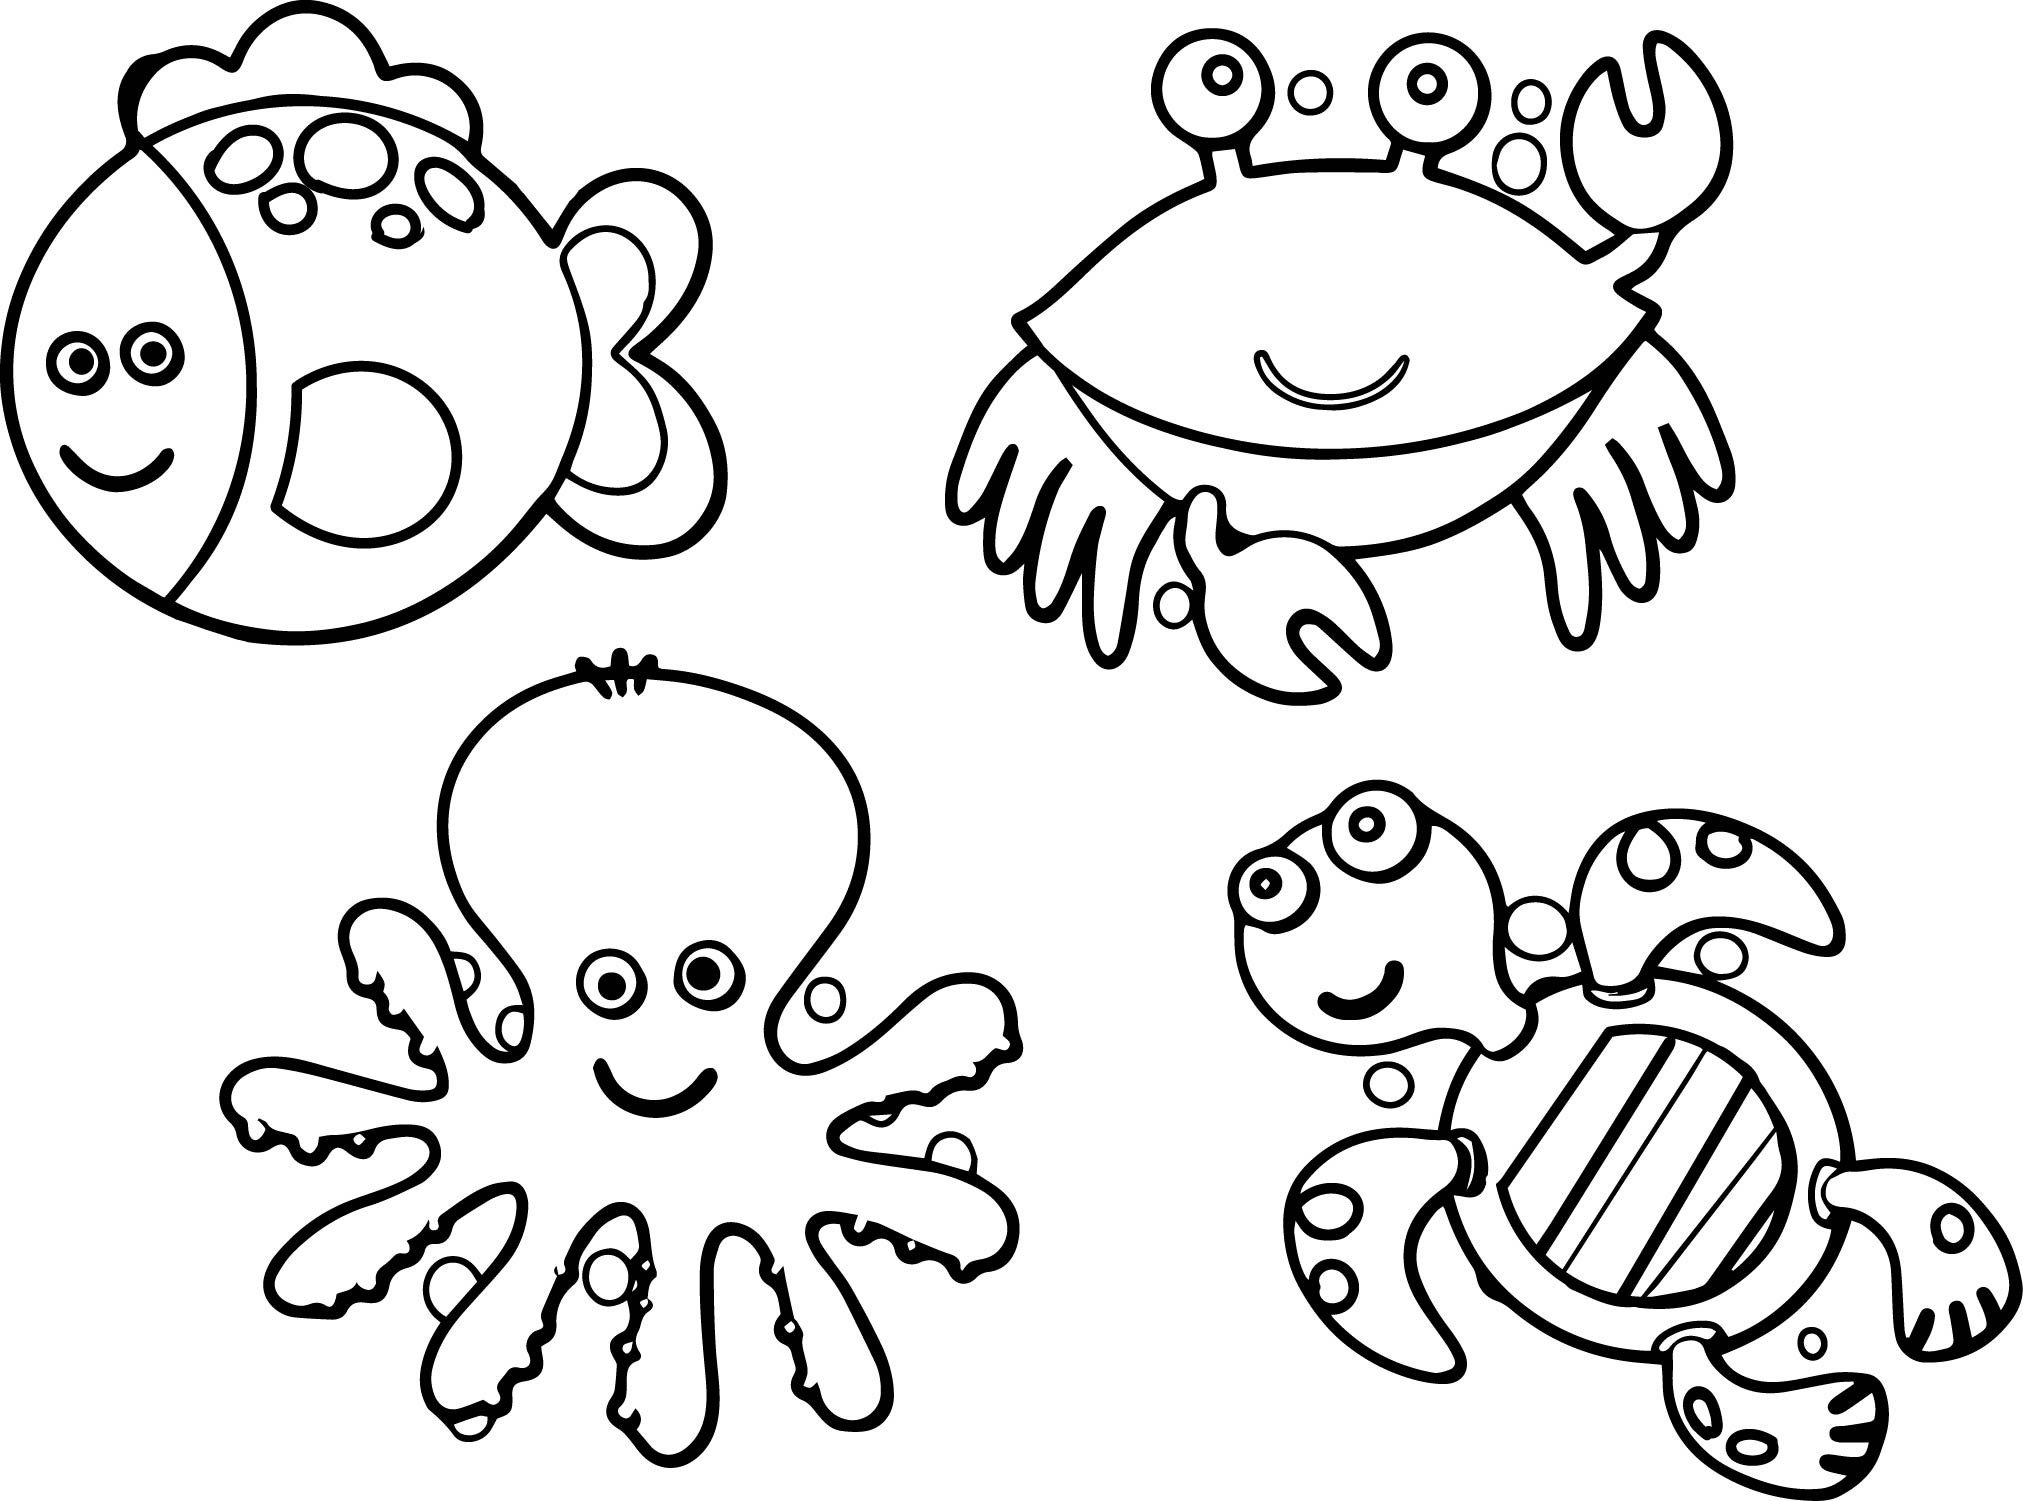 coloring pages ocean - sea life animals coloring page